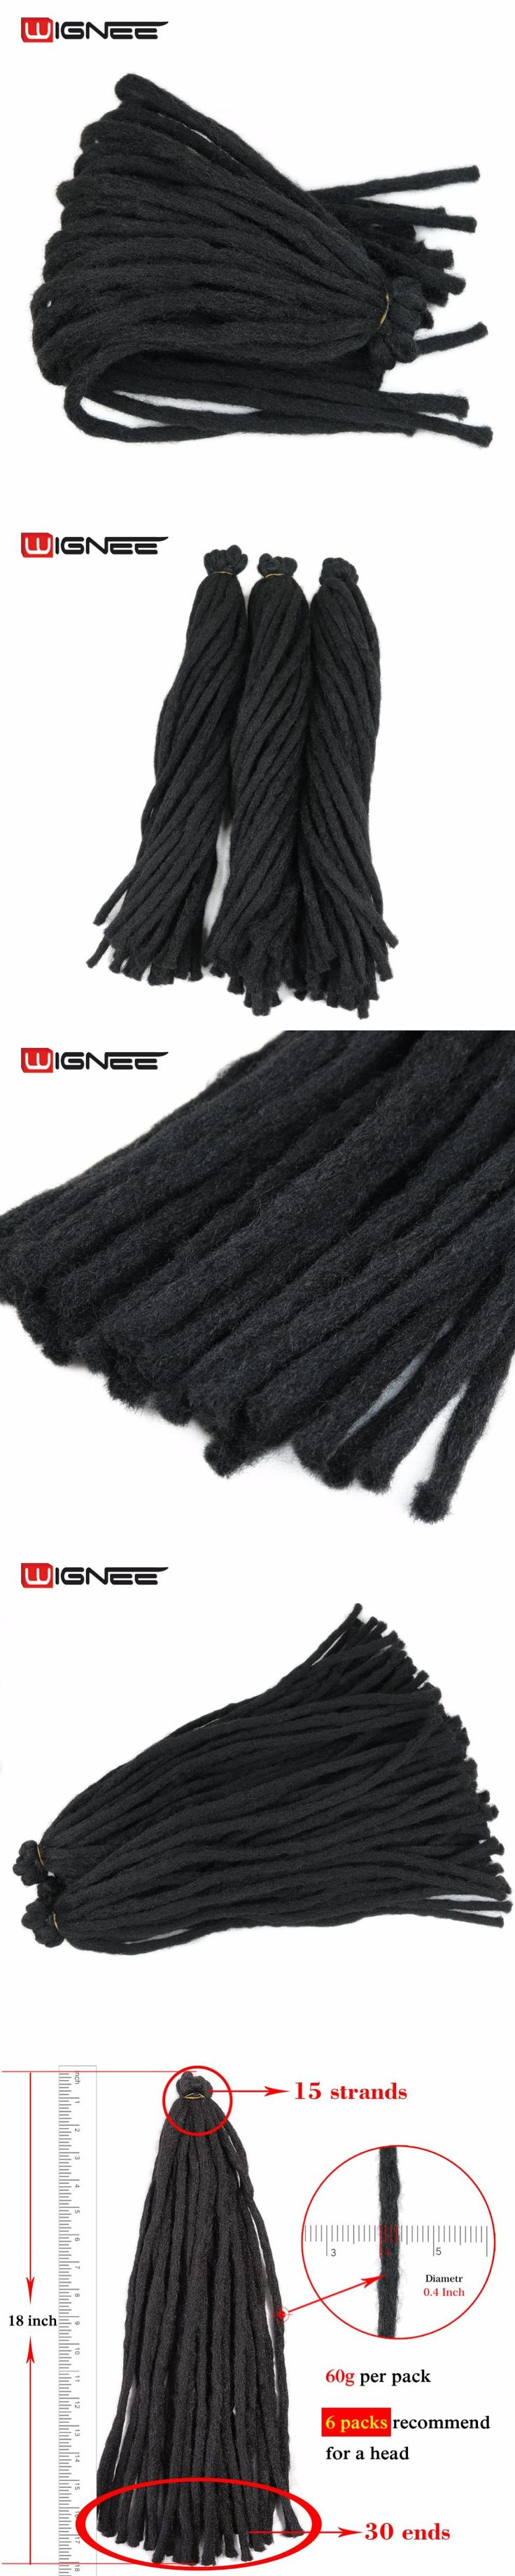 Wignee Thick Faux Locs Hair Extensions For Black Women/Men Heat Resistant Synthetic Crochet Twist Braiding Fake Hair Bundles